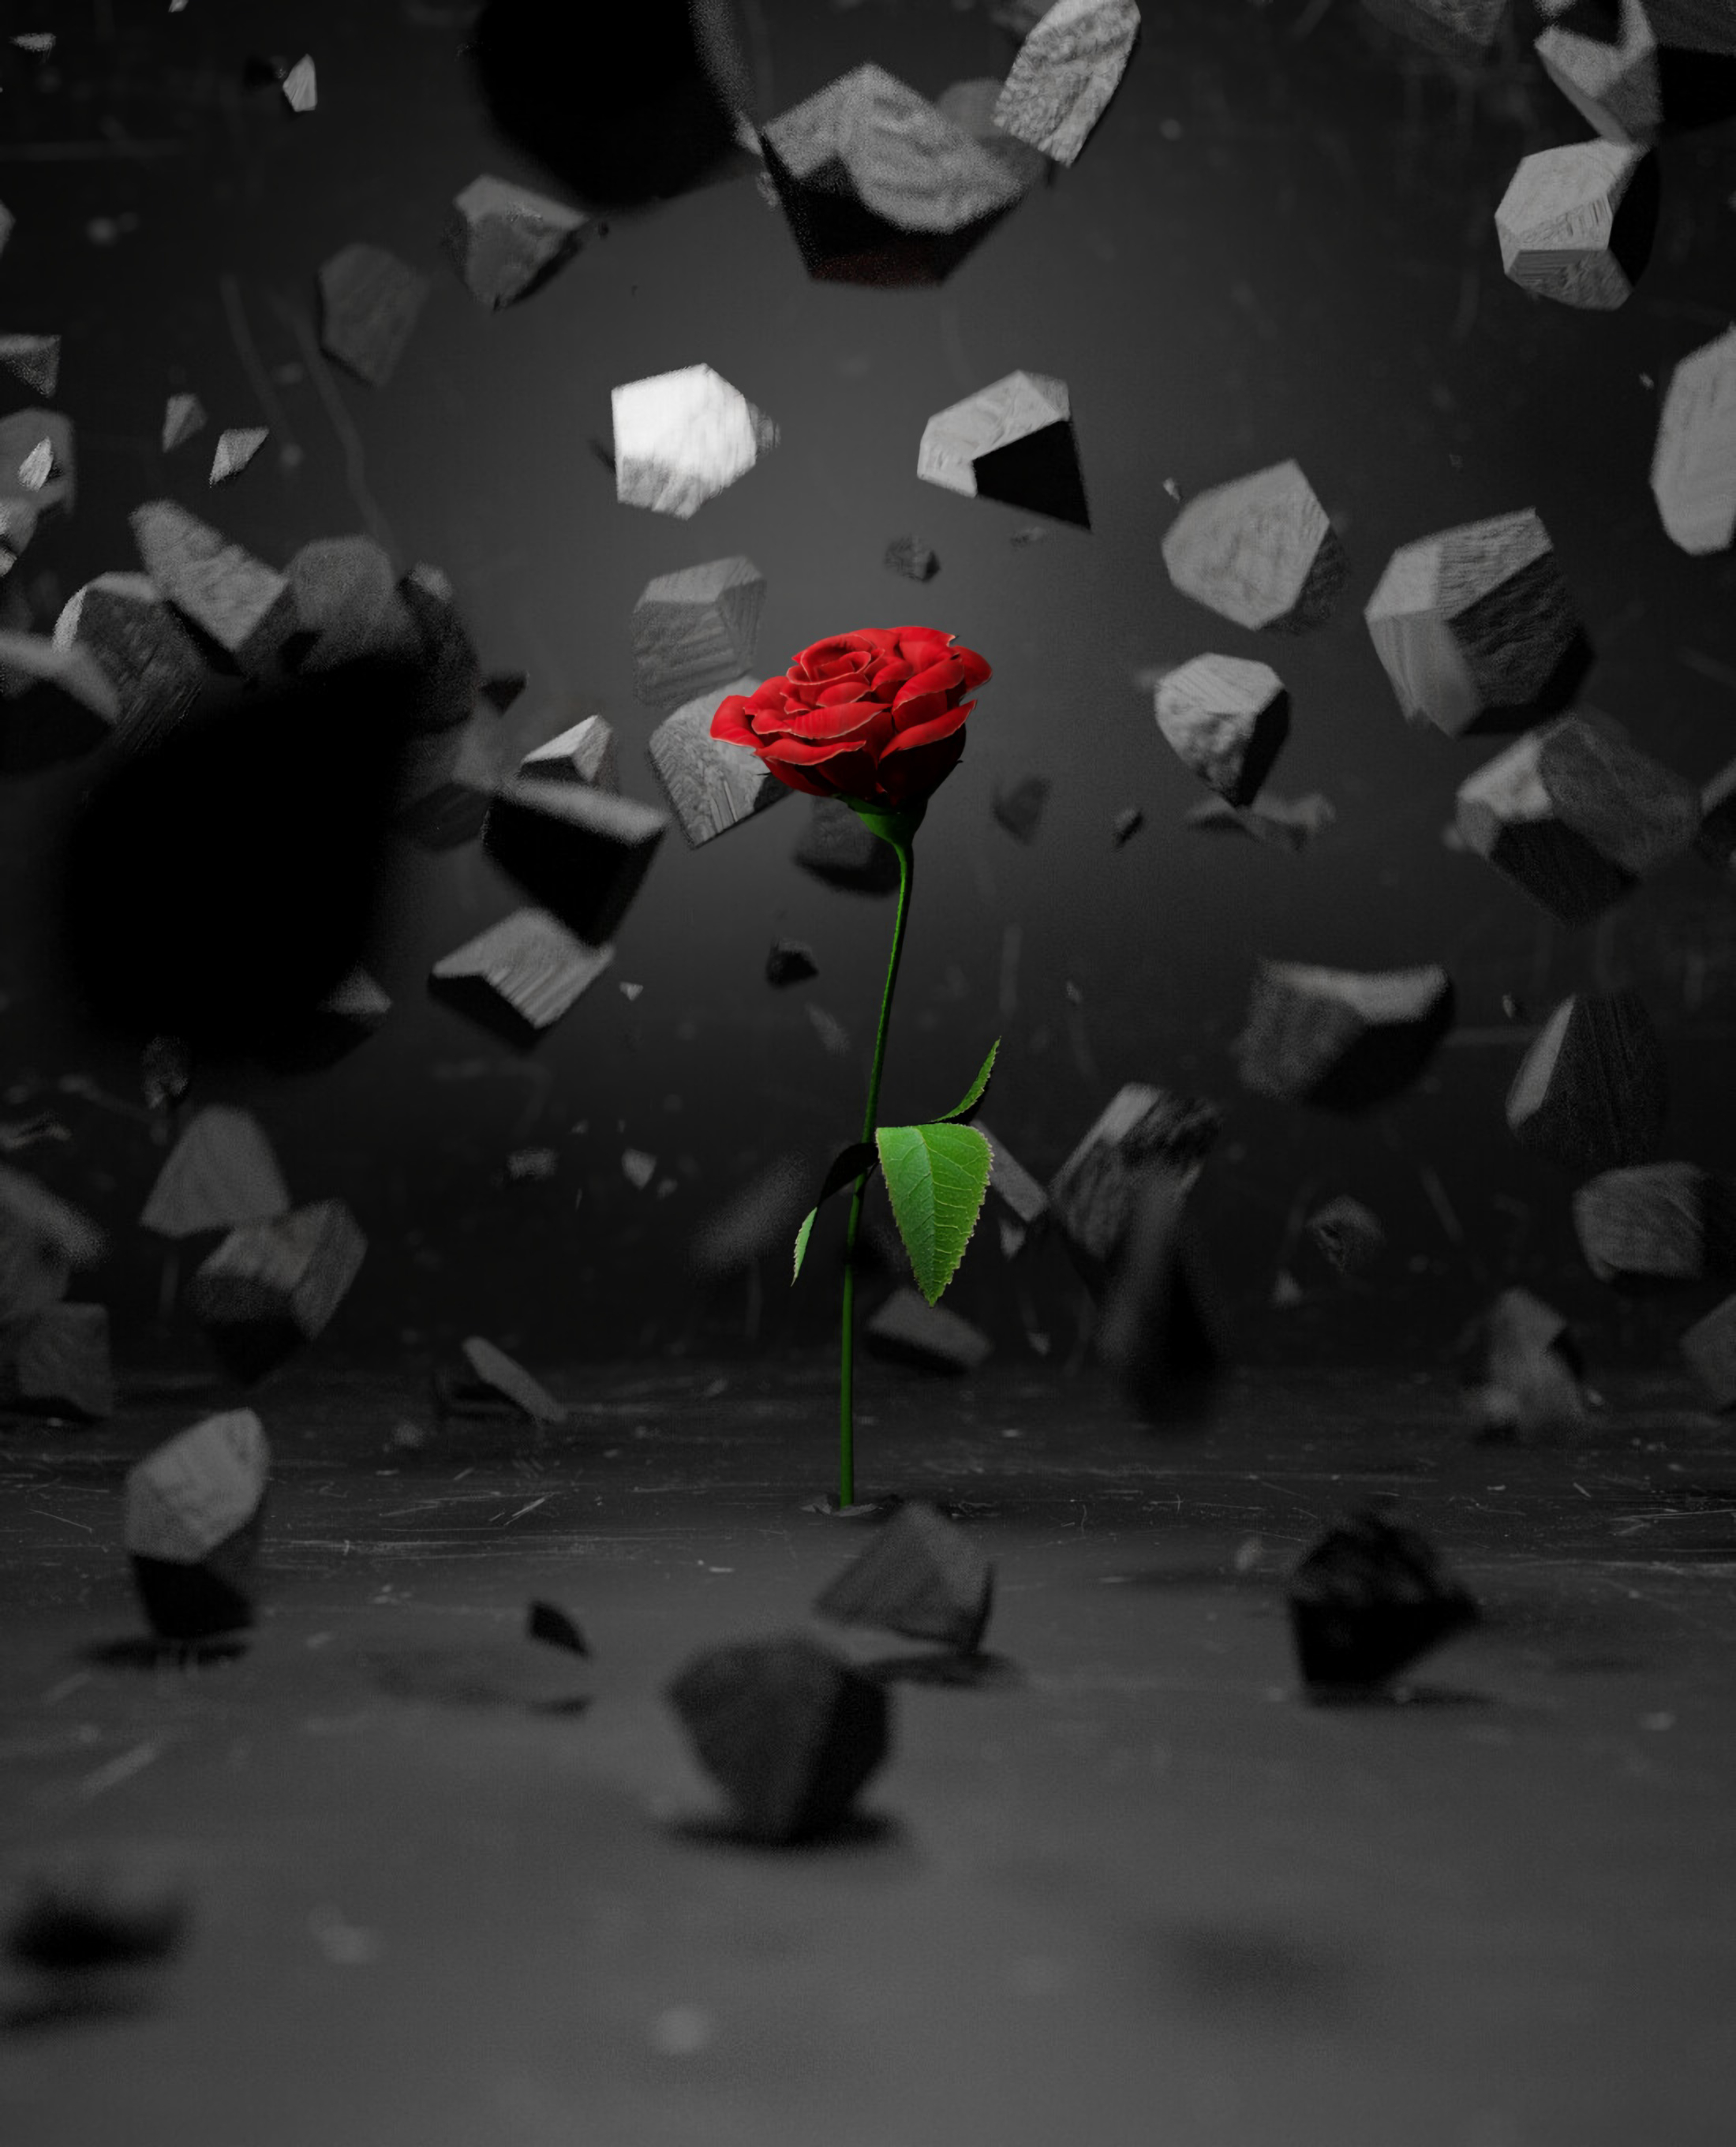 85736 download wallpaper 3D, Stones, Flower, Rose Flower, Rose, Shards, Smithereens screensavers and pictures for free